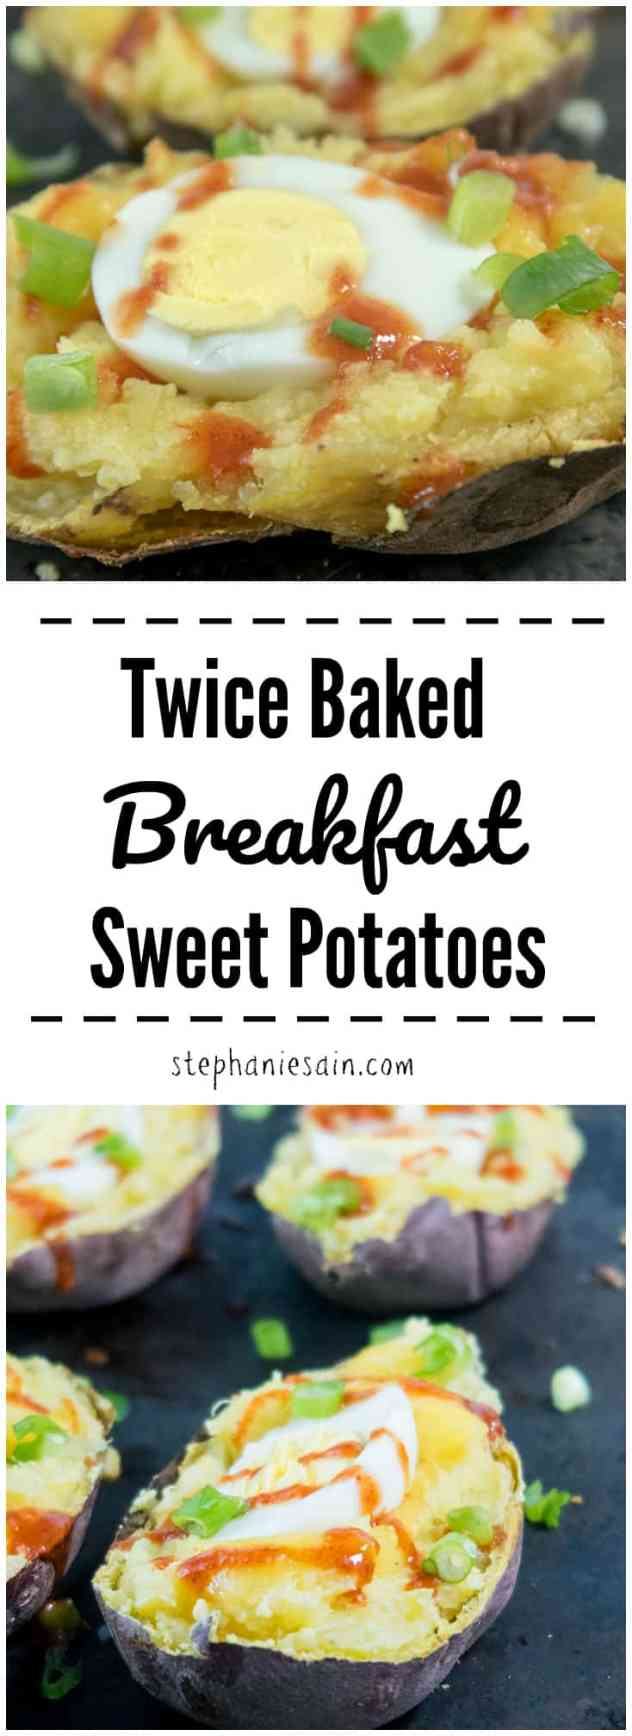 These Twice Baked Breakfast Sweet Potatoes are slightly sweet, smoky and perfect for a special breakfast or brunch. Vegetarian & Gluten Free.